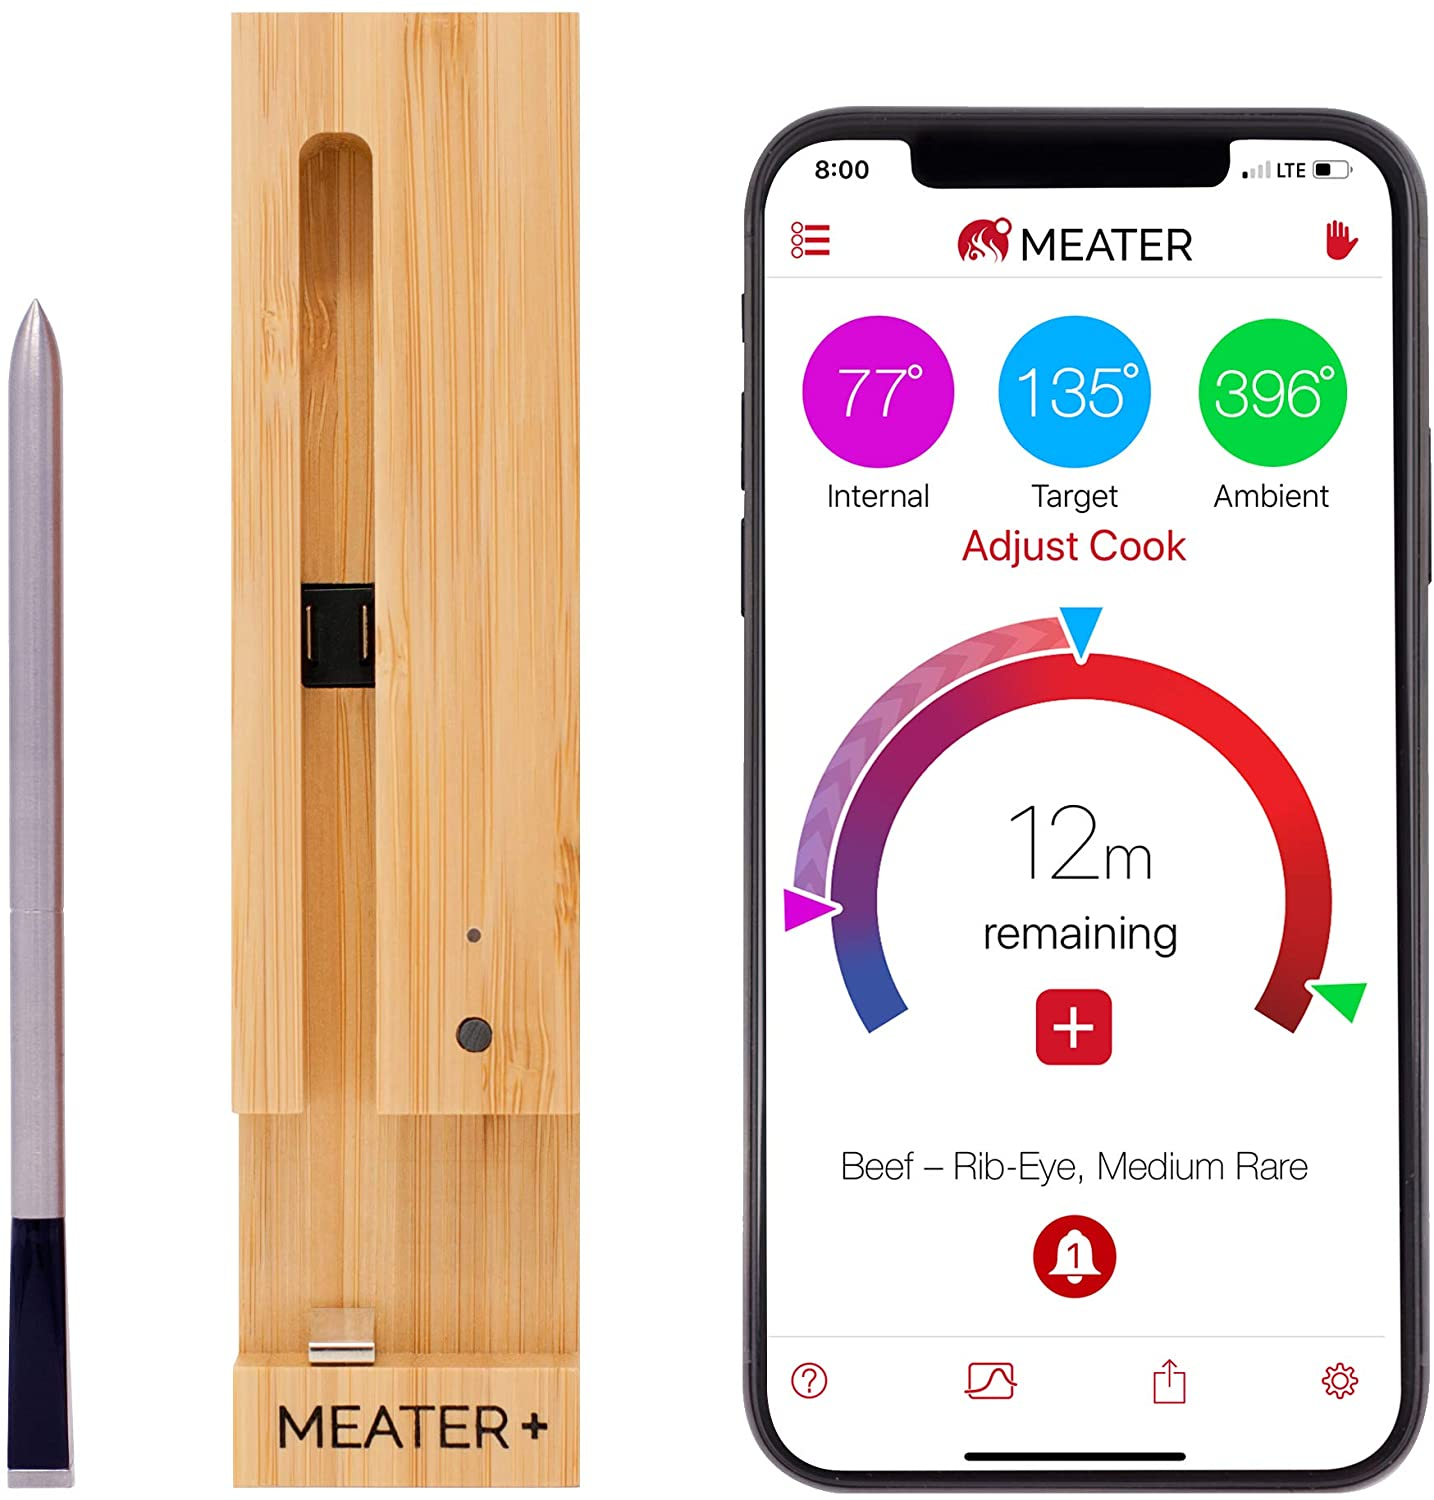 best smart home gadgets of 2020 - meater+